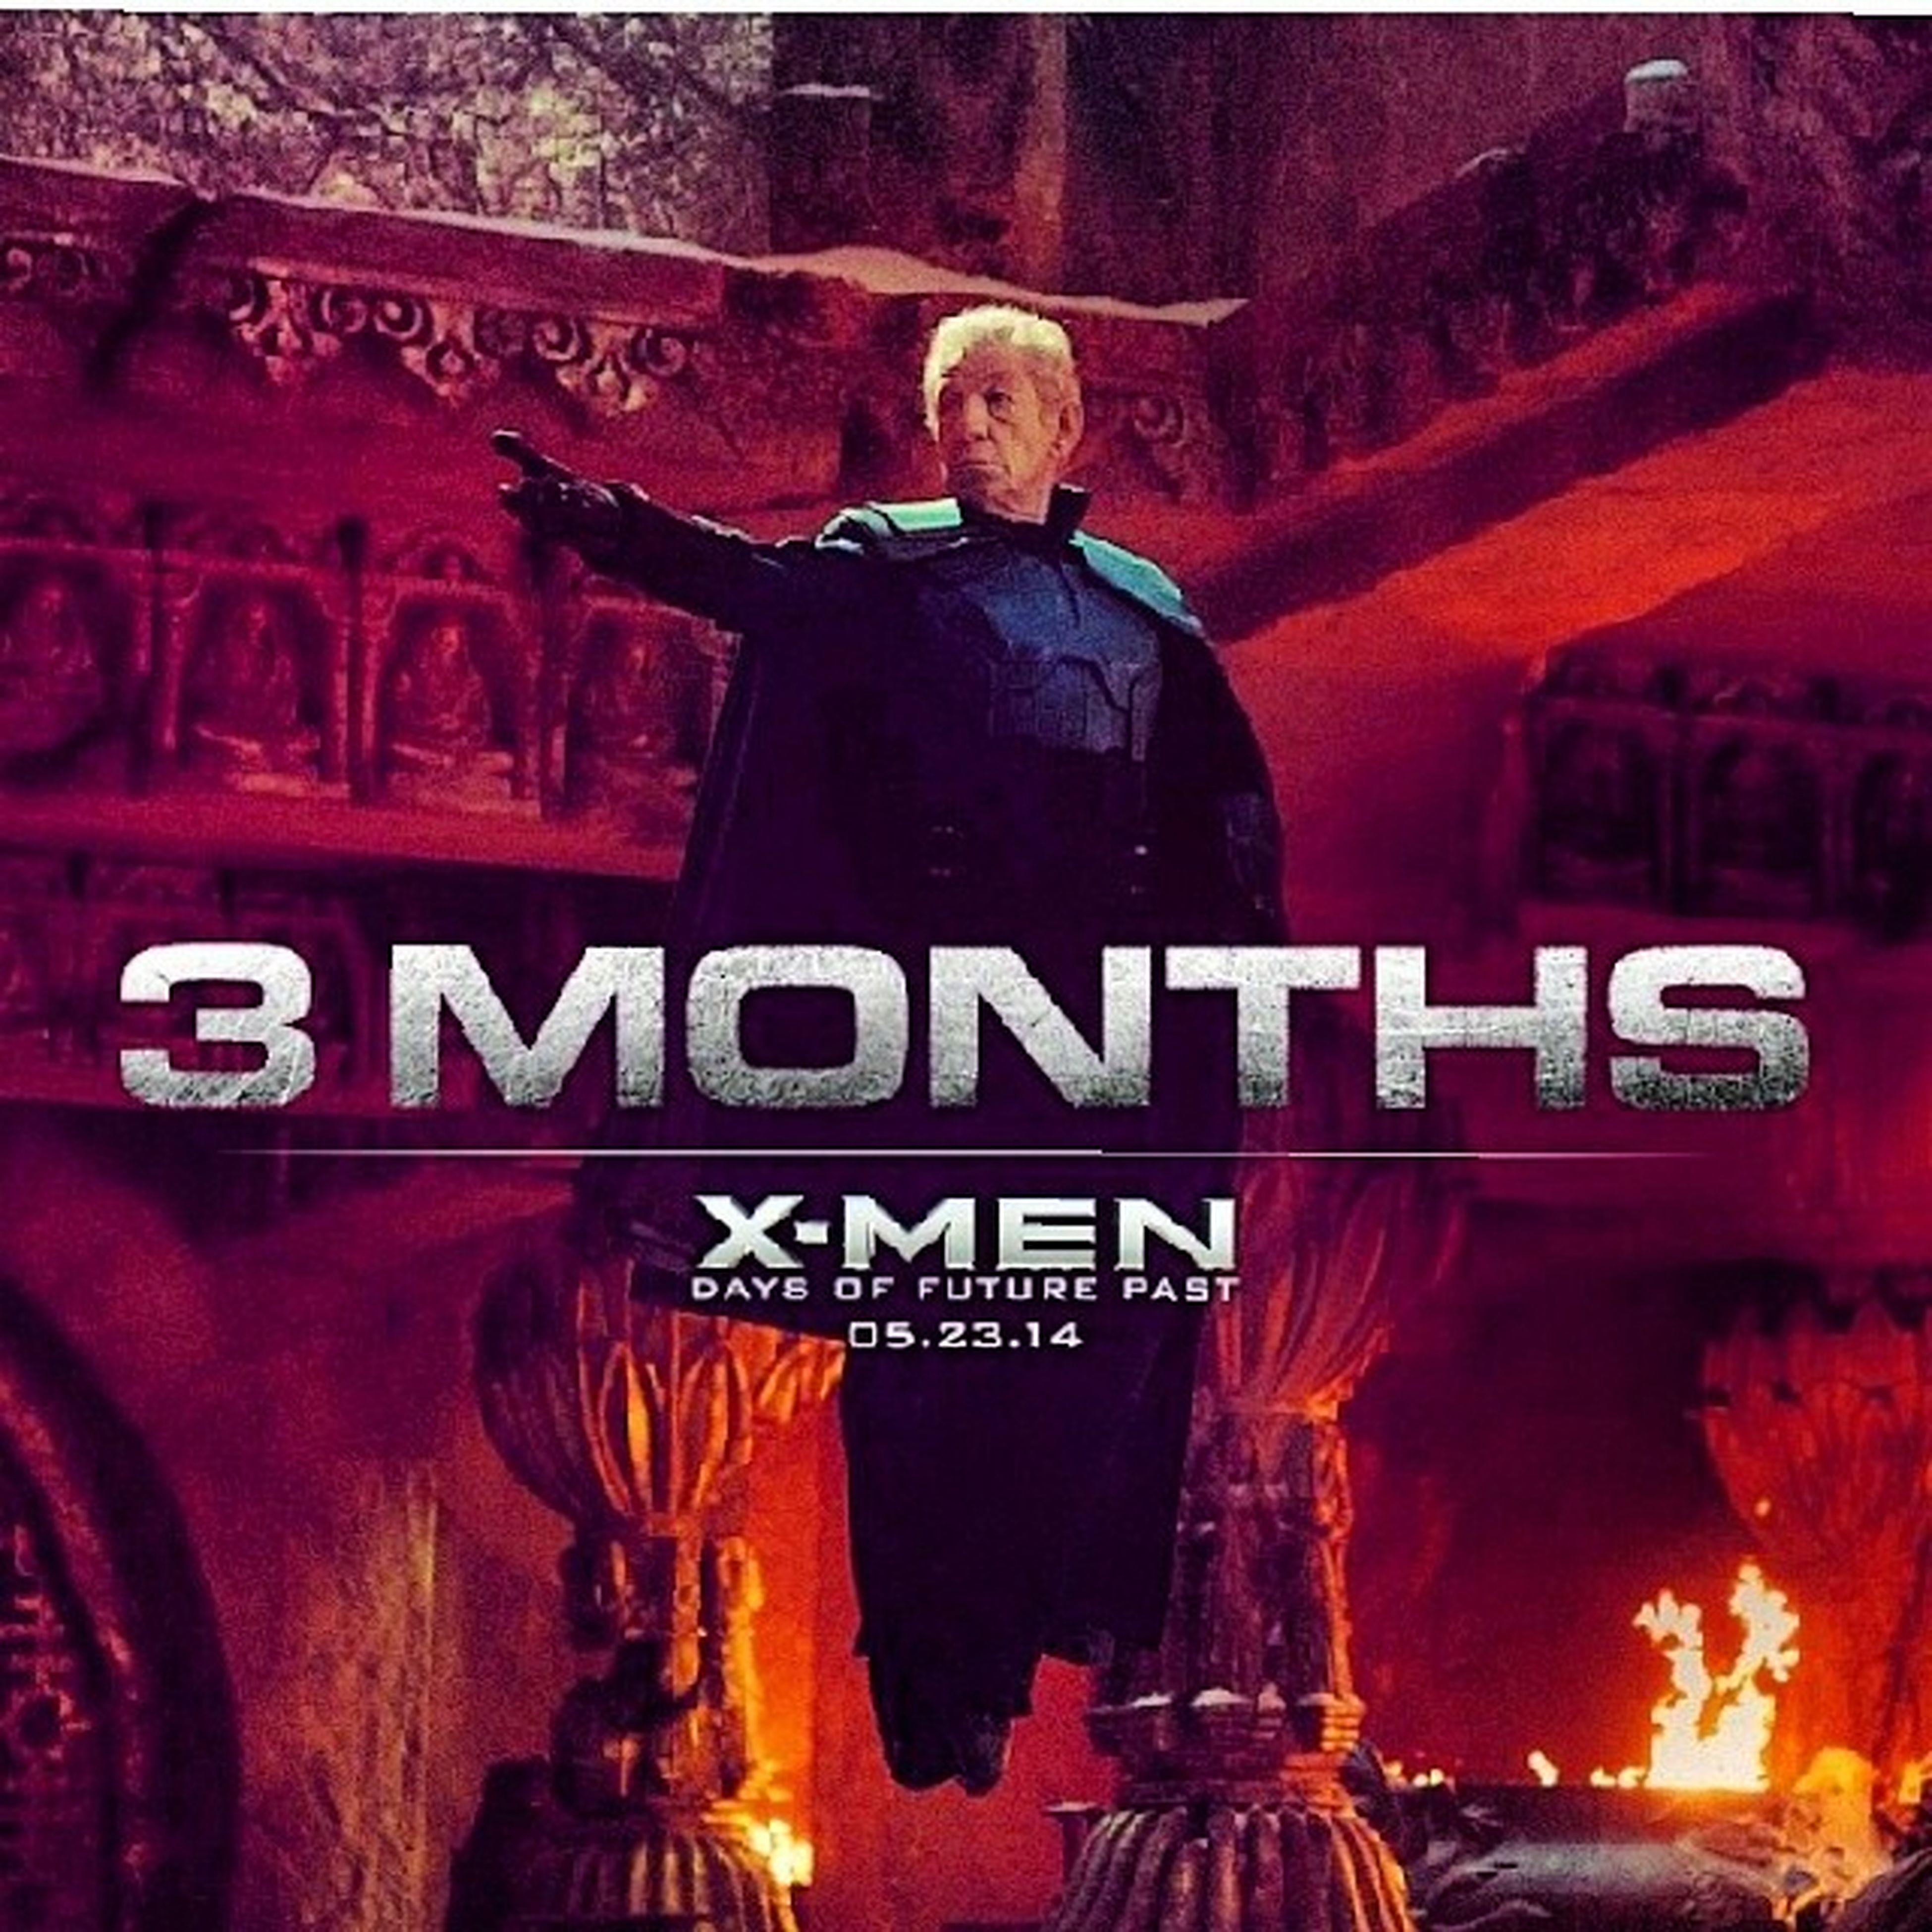 Call me a nerd, idgaf. But I am in LOVE with the X-MEN, from the comics to the movies. This new movie is supposedly one of the most expensive superhero movies ever made, and DAMNIT, I can't wait. So, let the countdown begin. 2 months 30 days until it's release. Xmendaysoffuturepast IReallyCantWait AmIANerdOrNaahhhh ?